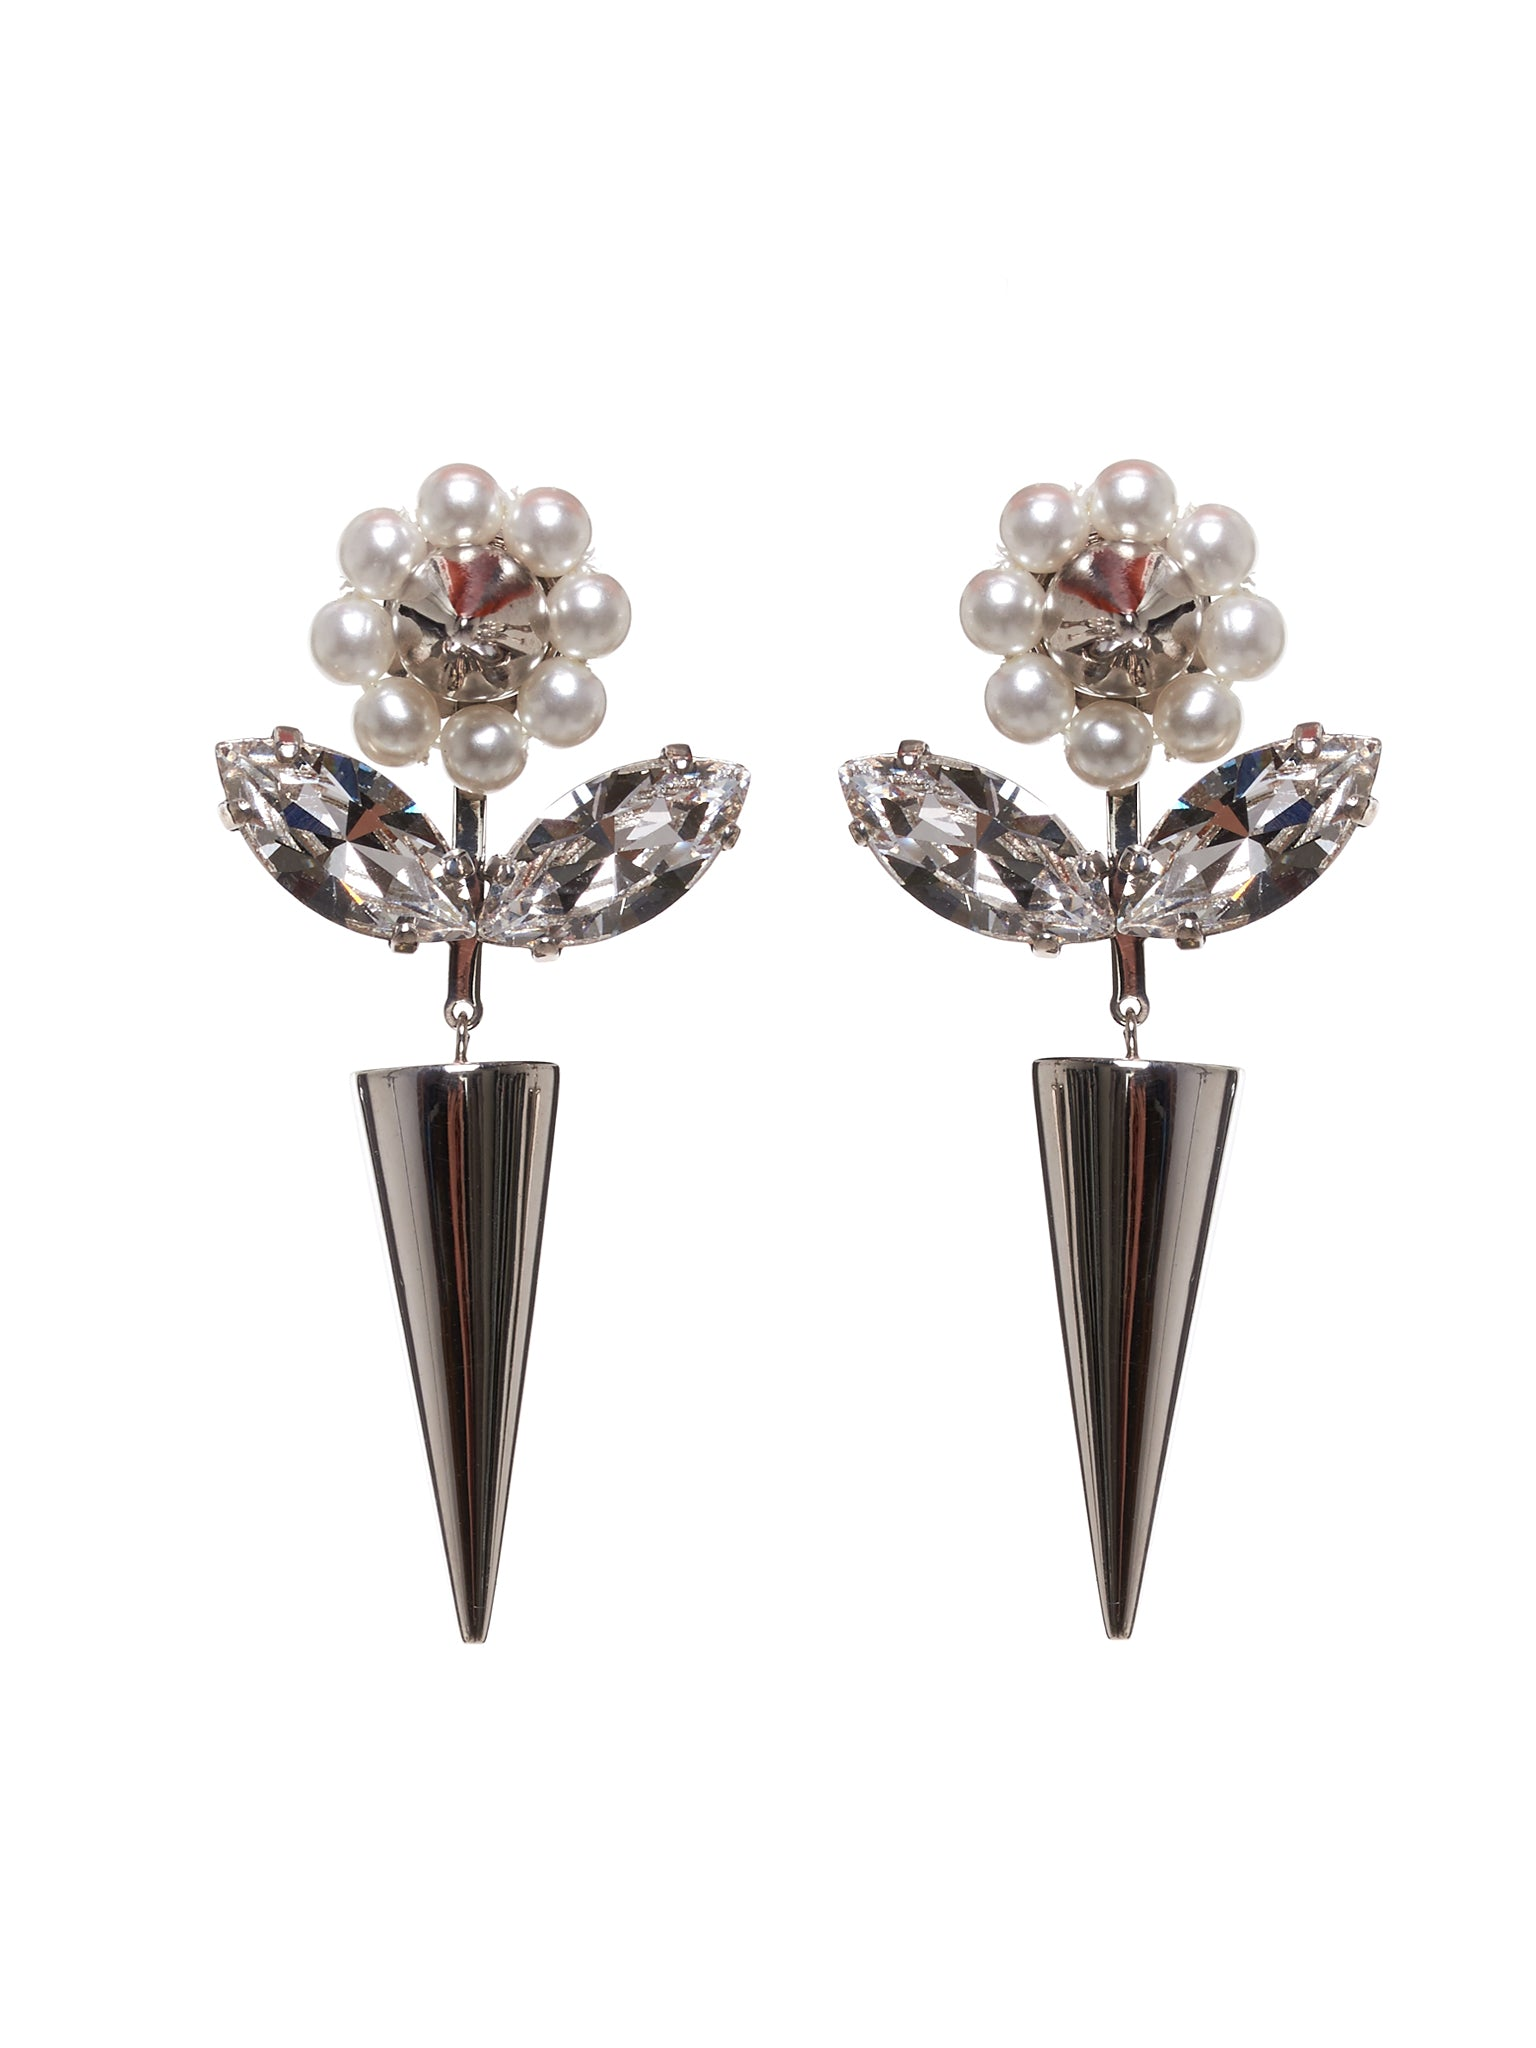 Flower and Spike Earrings (ERG189-0906-PEARL-CLEAR)